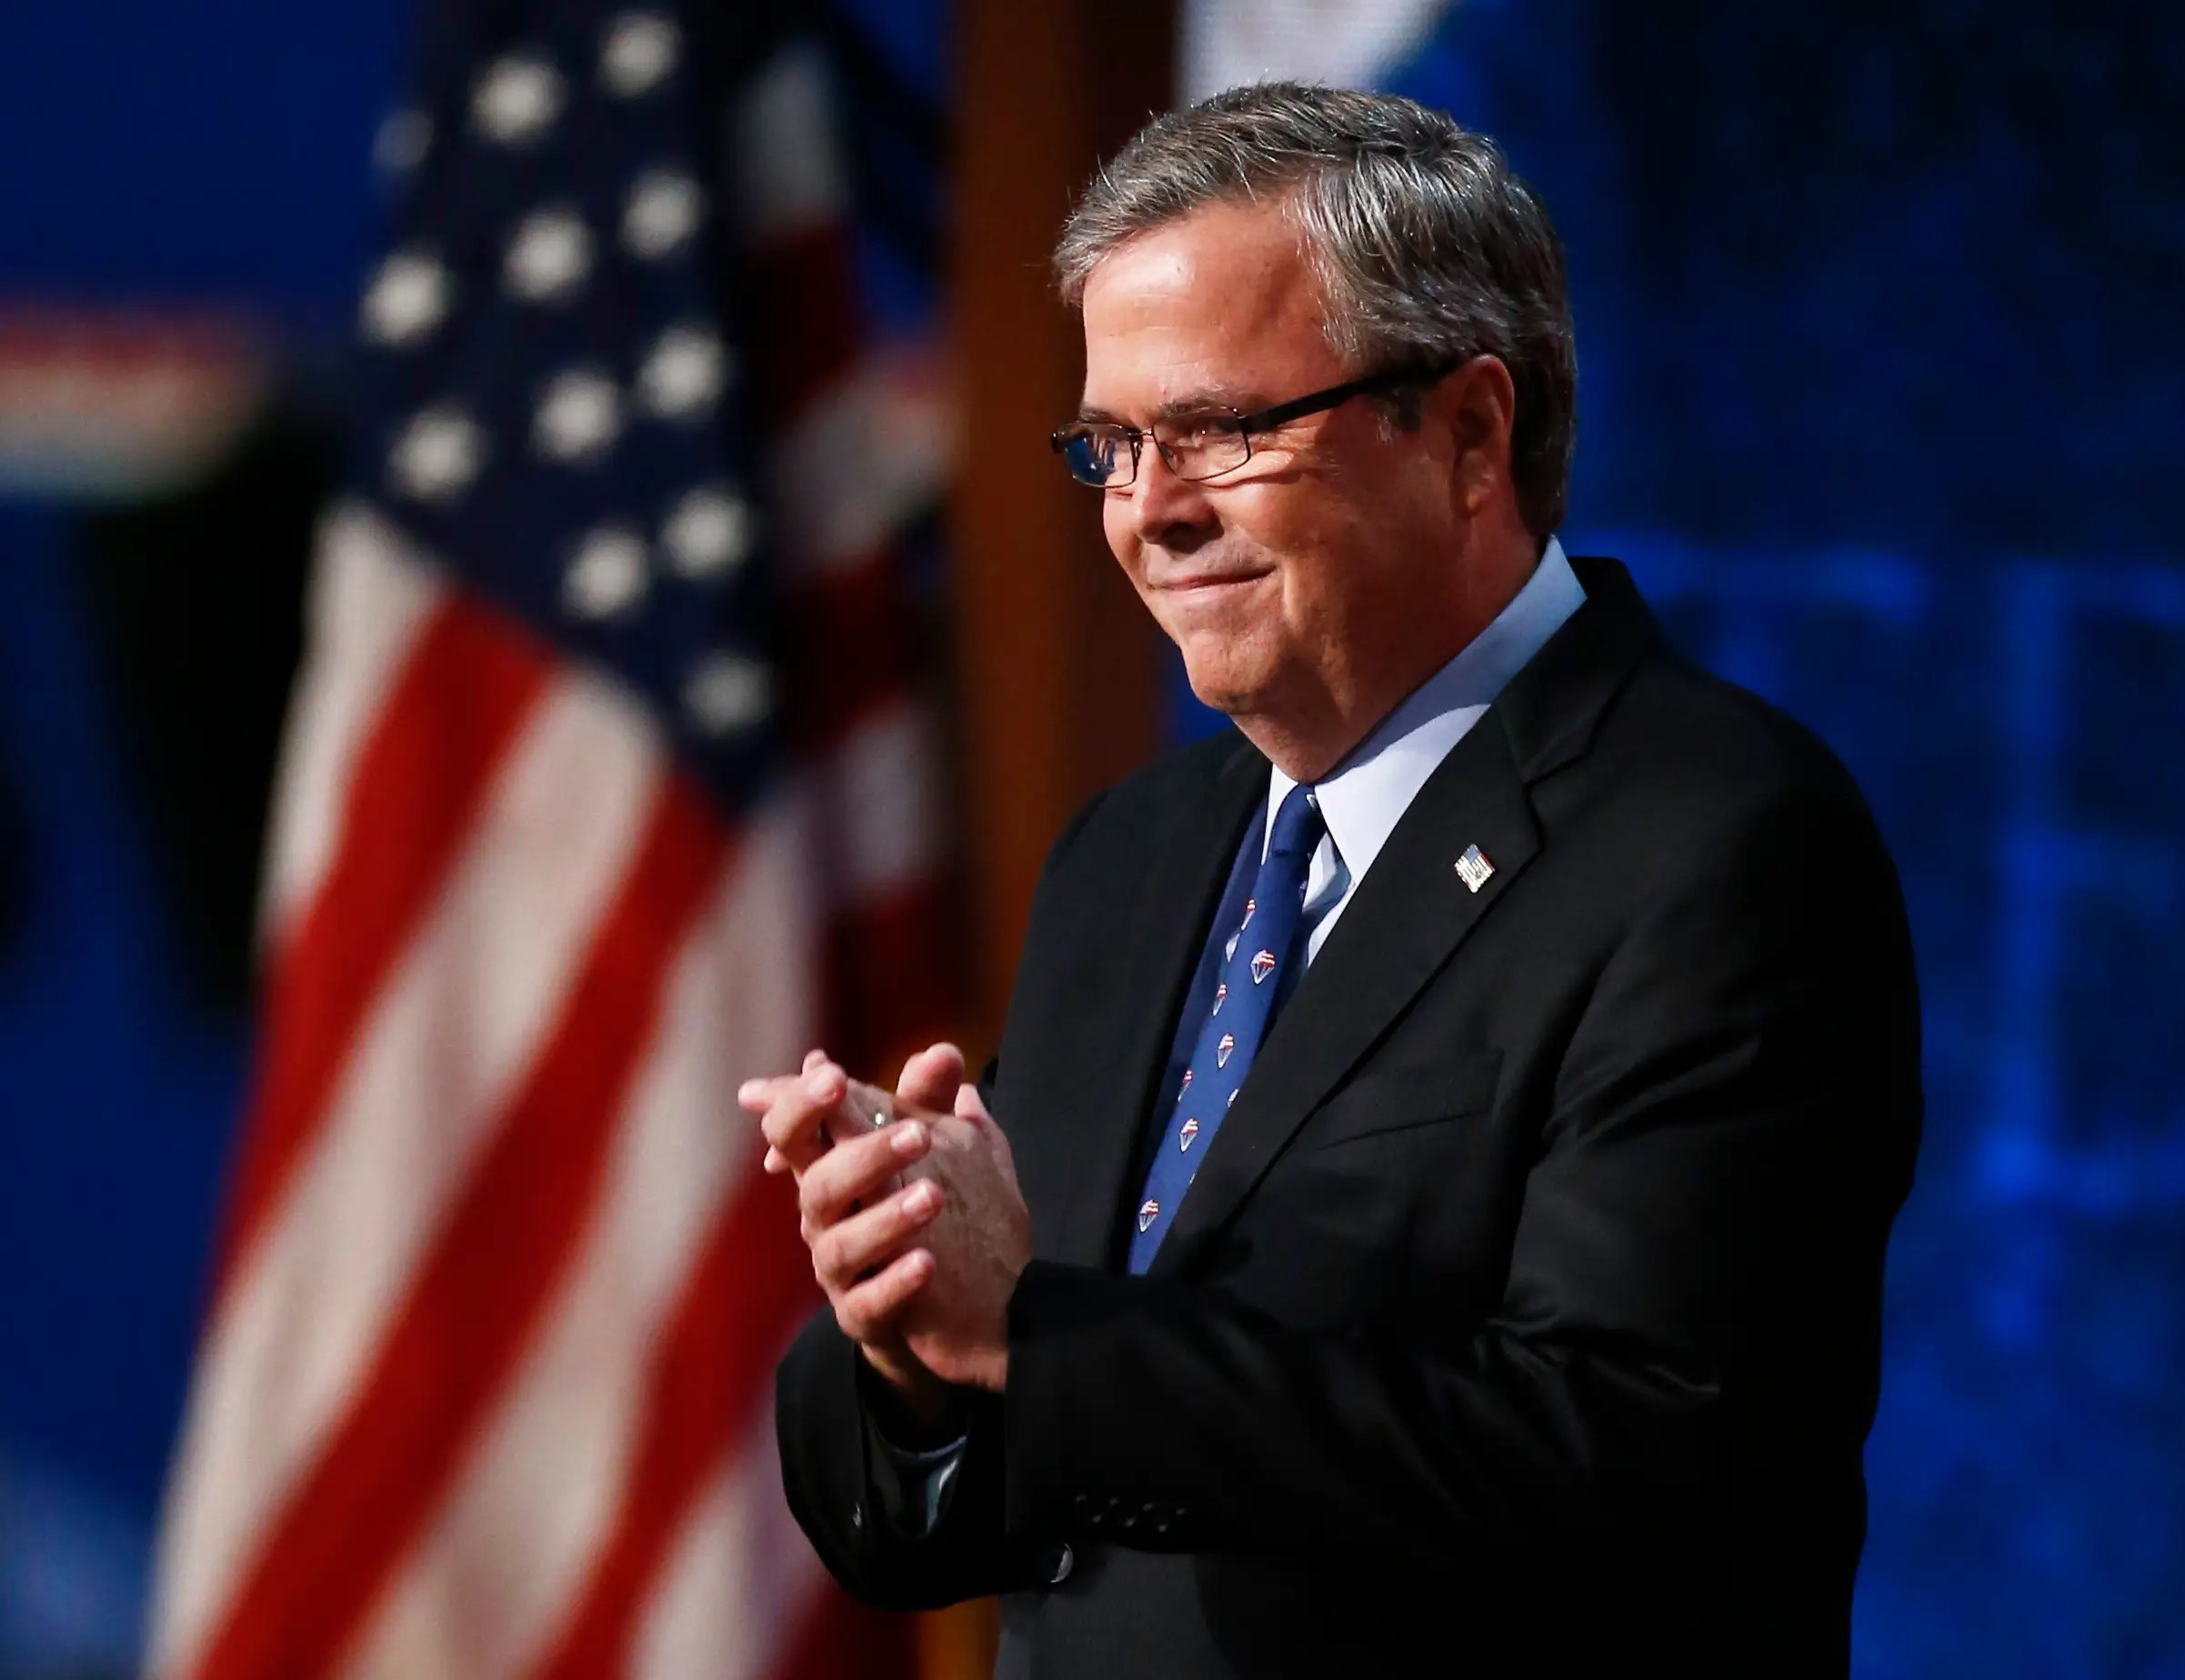 Jeb is considered a GOP front-runner for 2016.